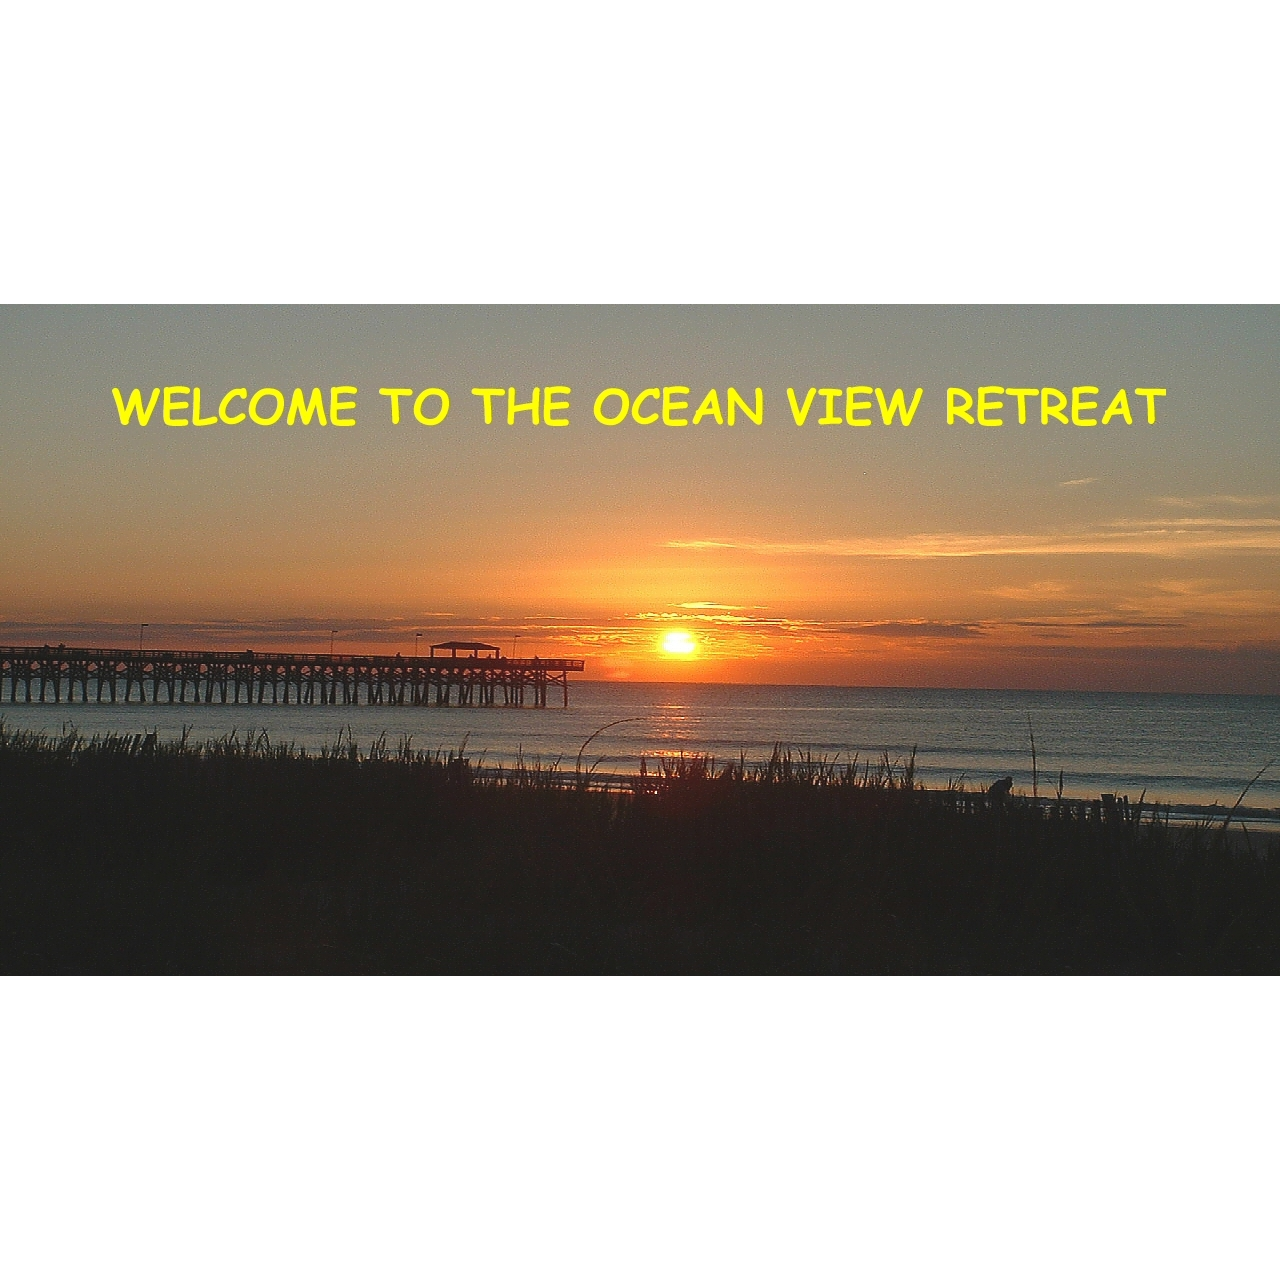 Ocean View Retreat